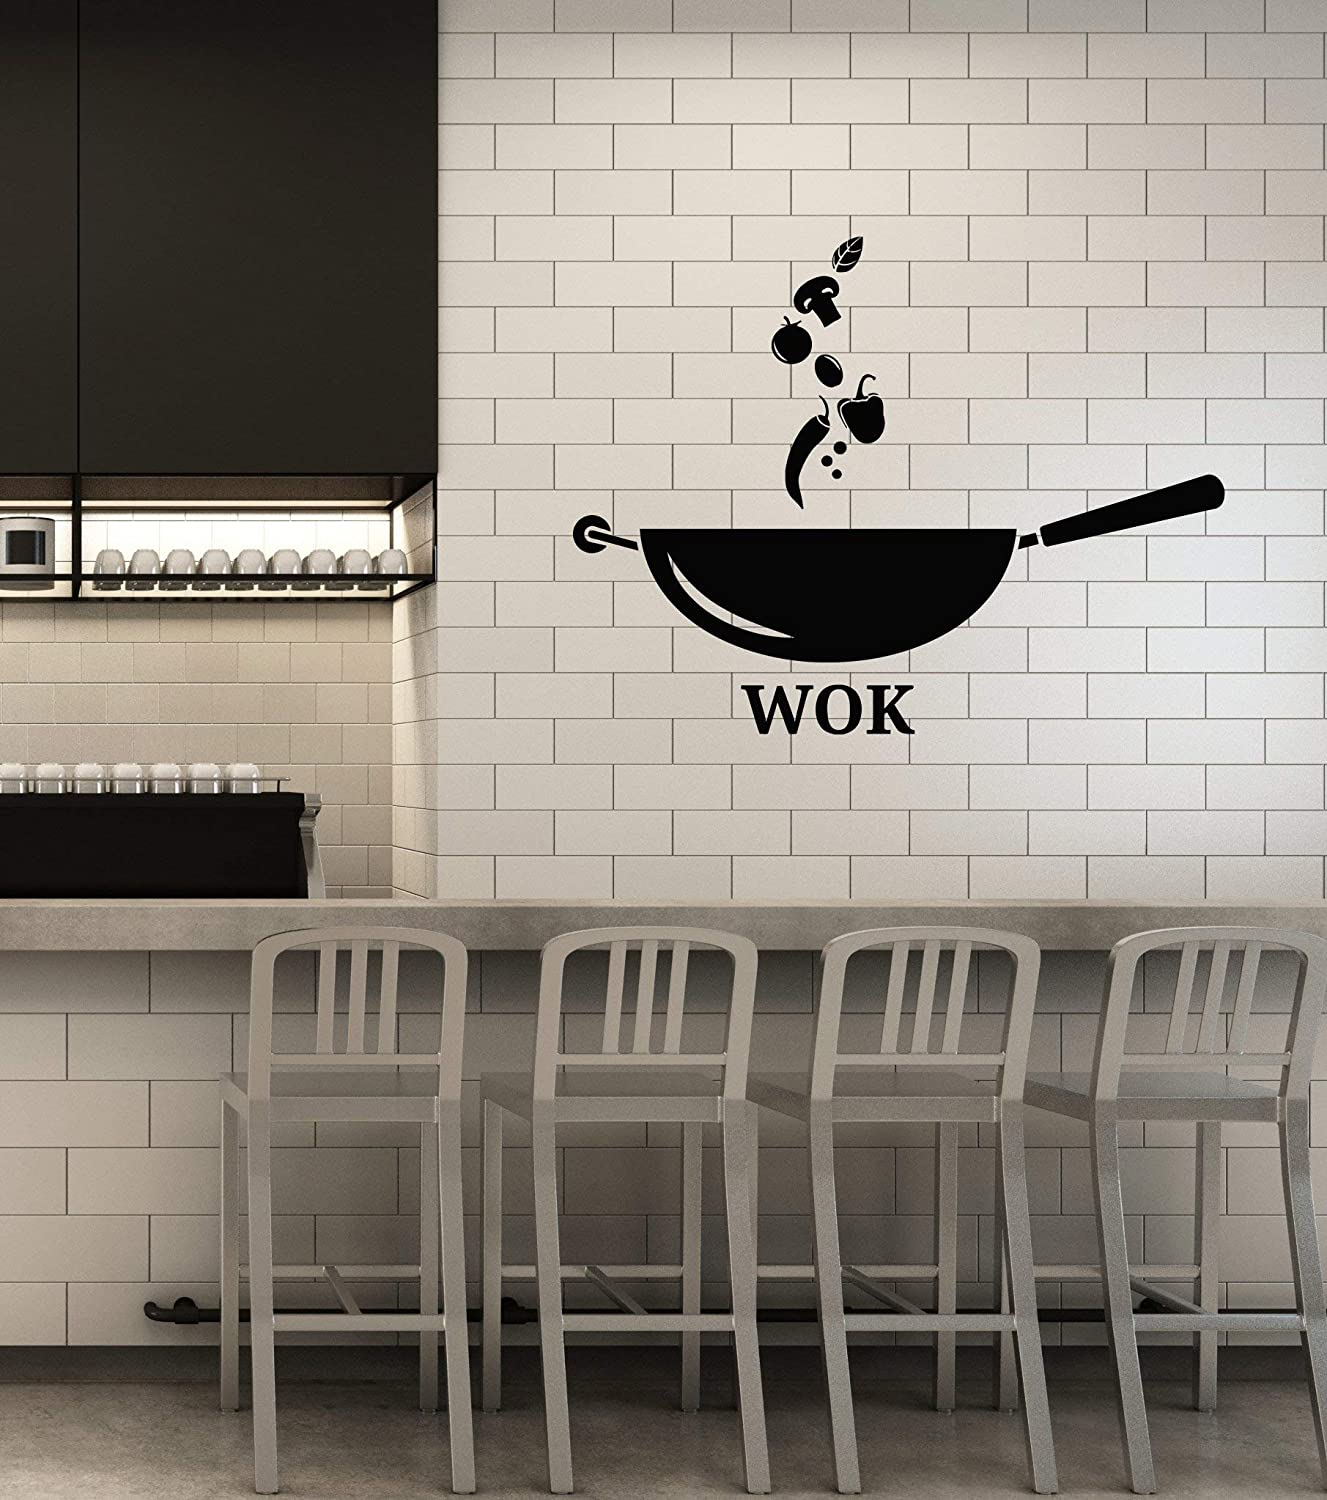 Vinyl Wall Decal Kitchen Wok Frying Pan Vegetables Food Stickers Mural Large Decor (g4546) Black